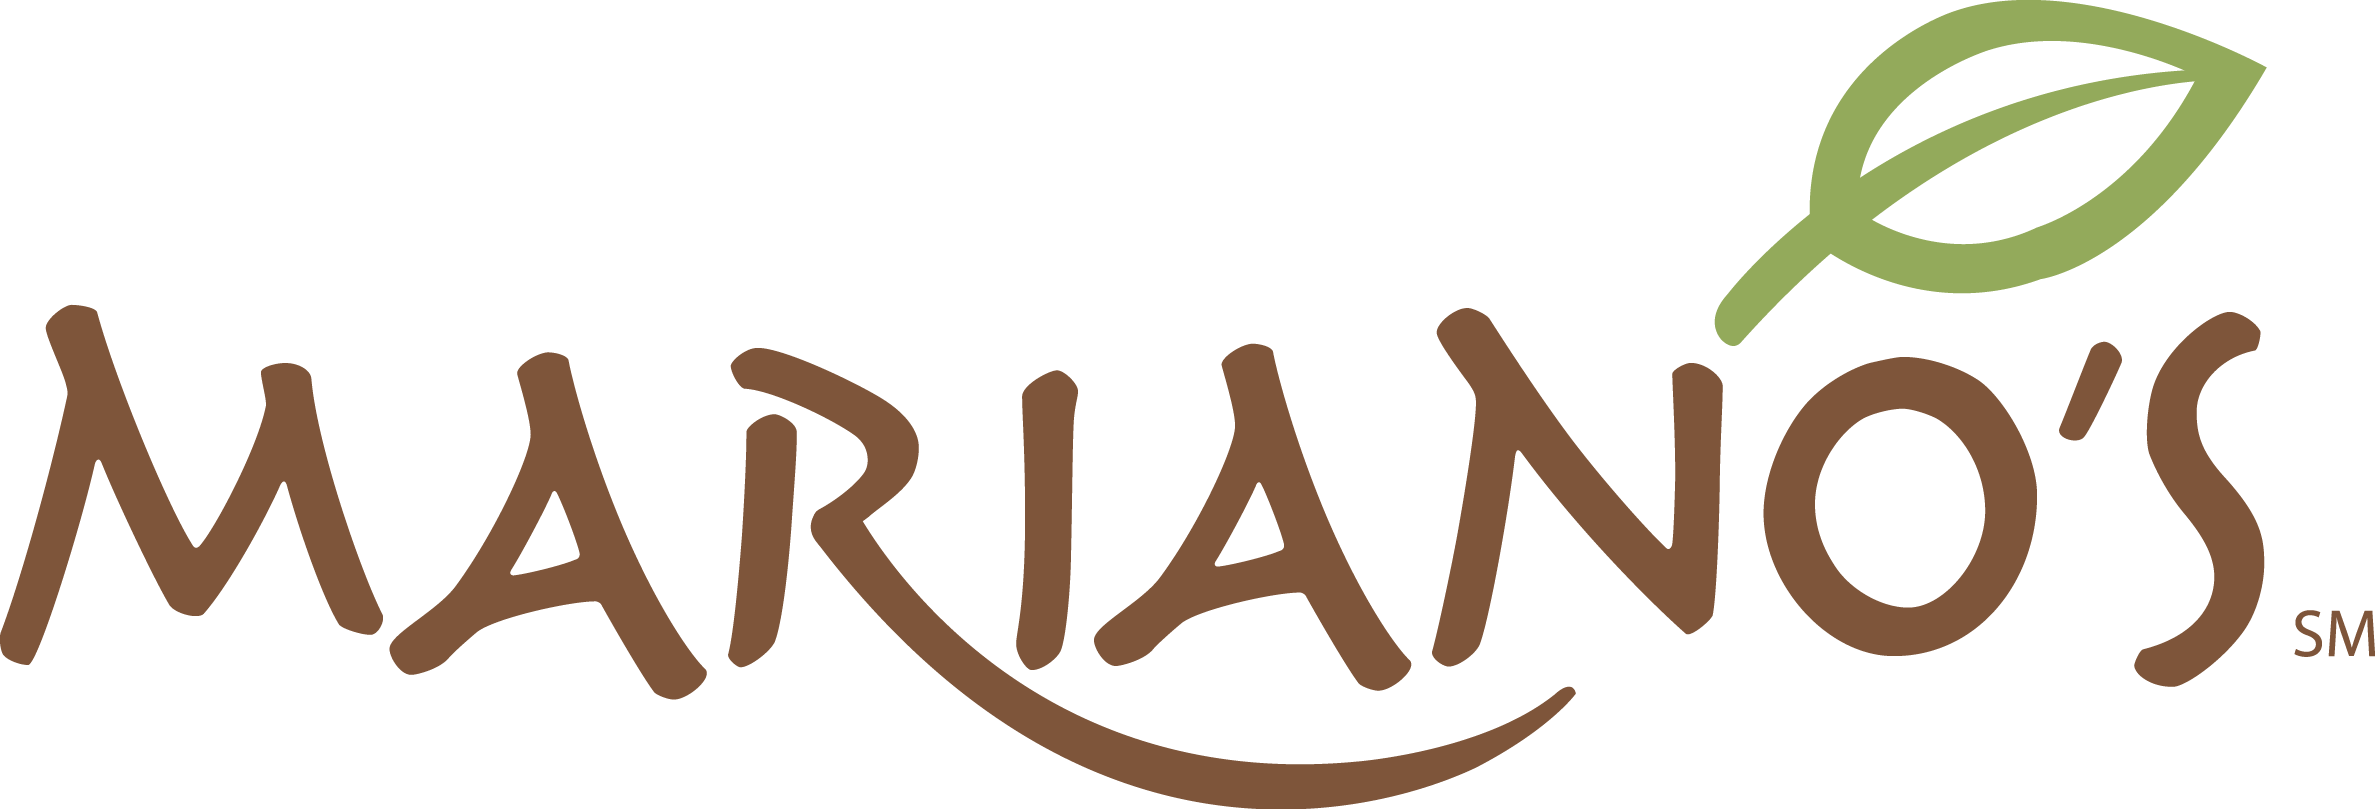 Mariano's Logo with SM.png